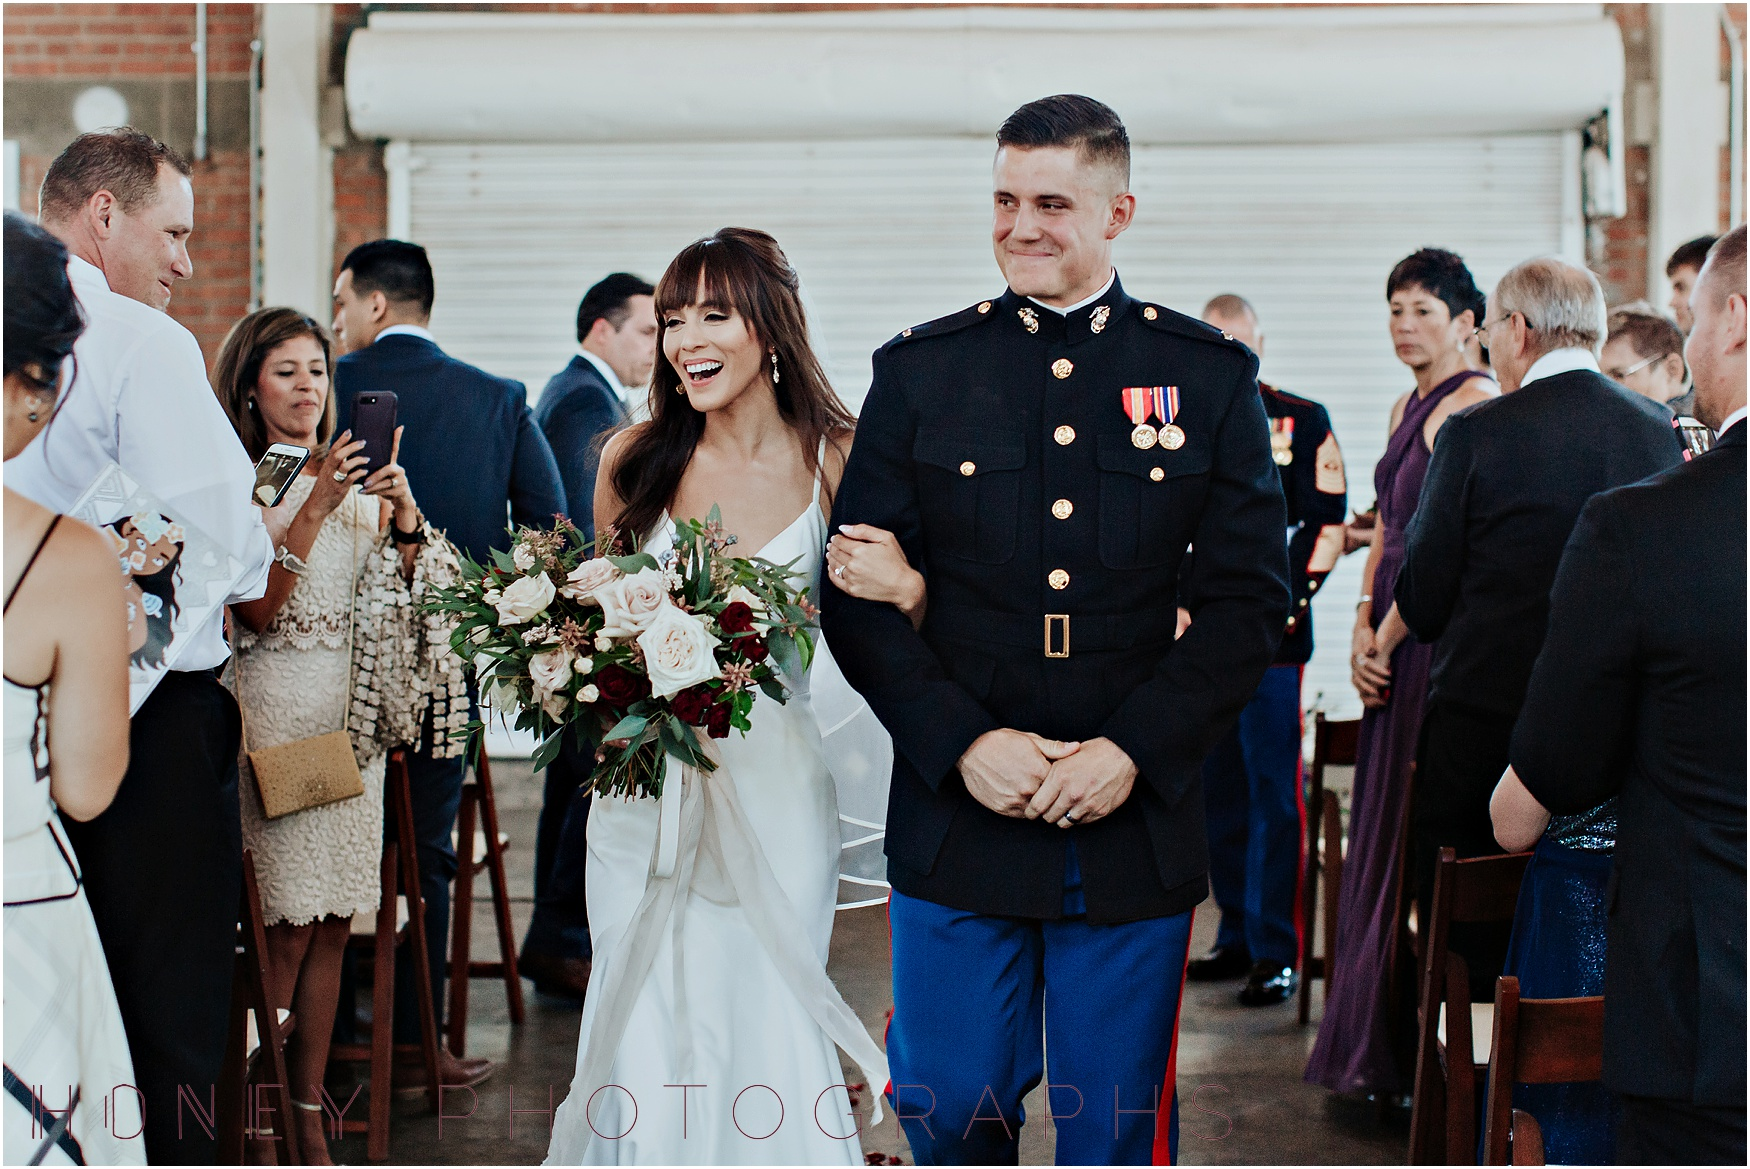 bricksandiegomilitaryurbanwedding0020.JPG